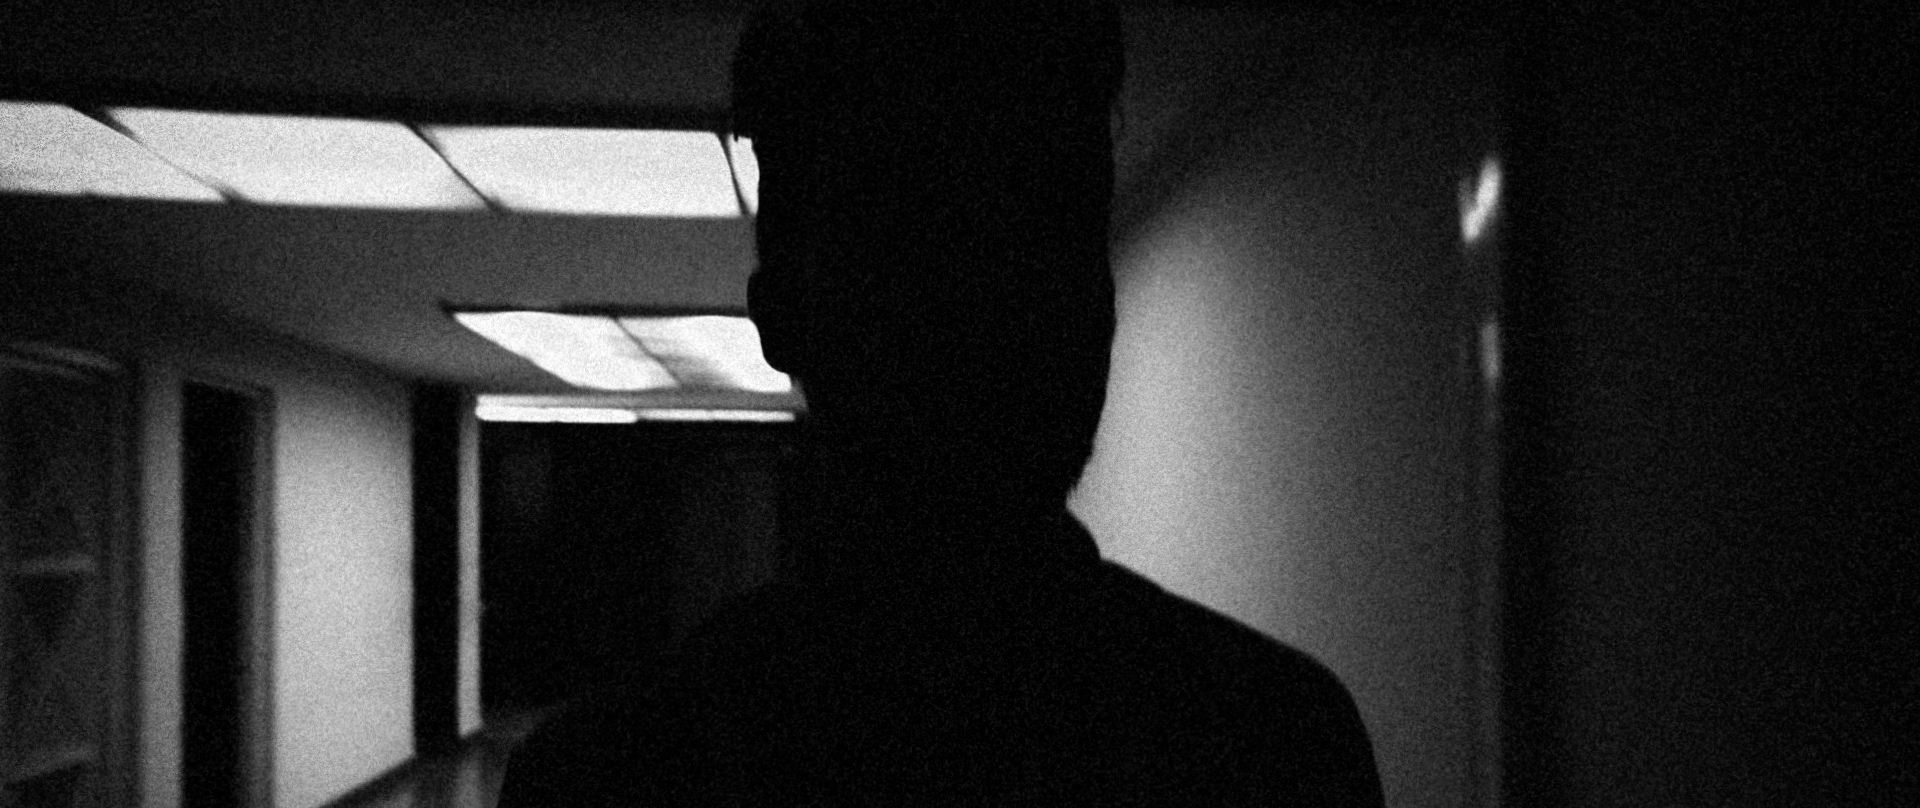 Cinematographer Alejandro Menéndez Vega used black and wide images, super wide lenses, and a thick grain to create the film's appalling visual style.